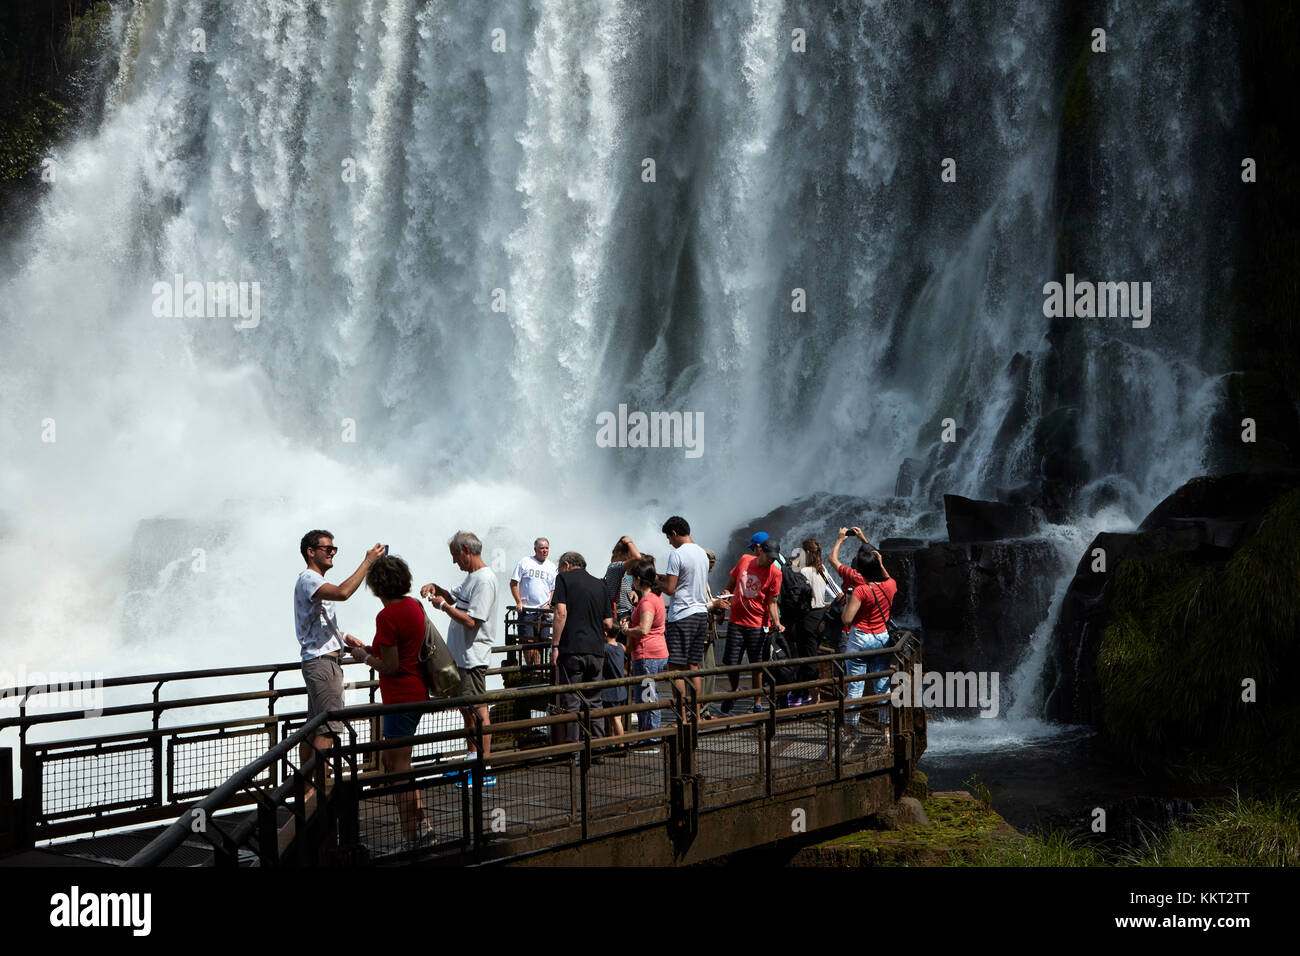 Tourists on lookout by Iguazu Falls, on Argentina - Brazil Border, South America - Stock Image